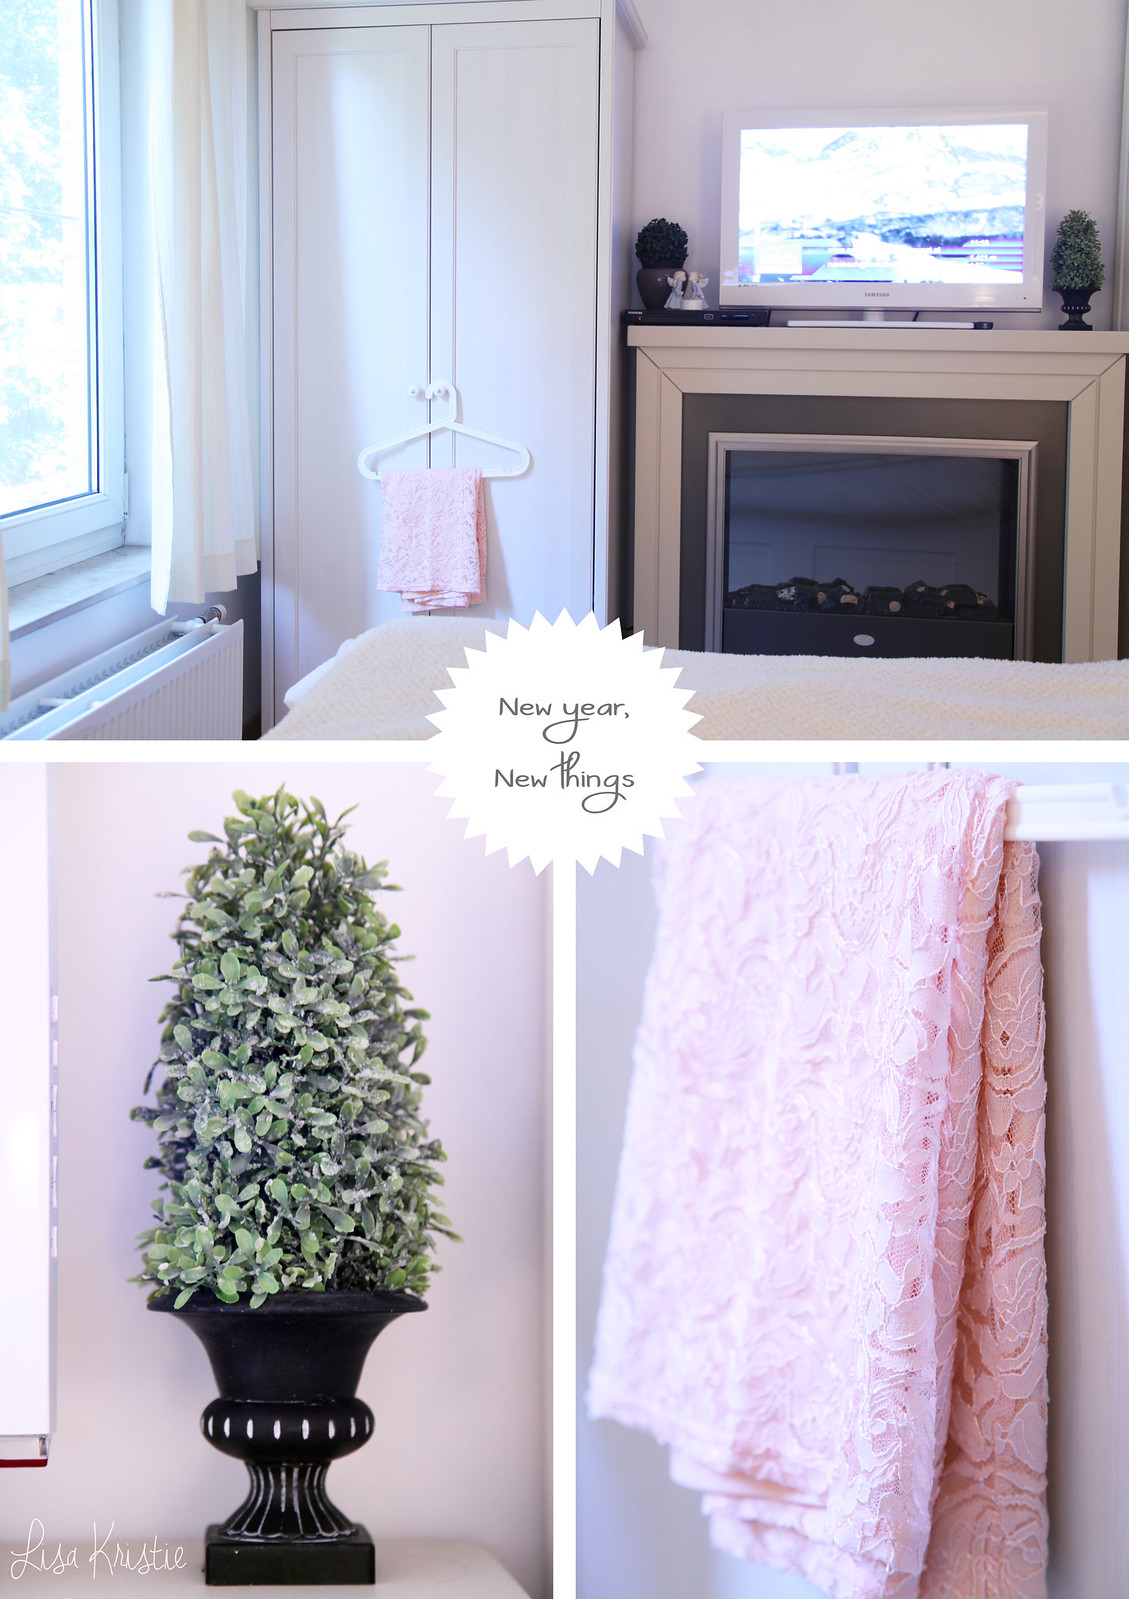 home interior bedroom decoration white winter themed ikea scandinavian pink lace skirt fake plants tree frosted buxus miniature pot fireplace samsung tv flatscreen bed